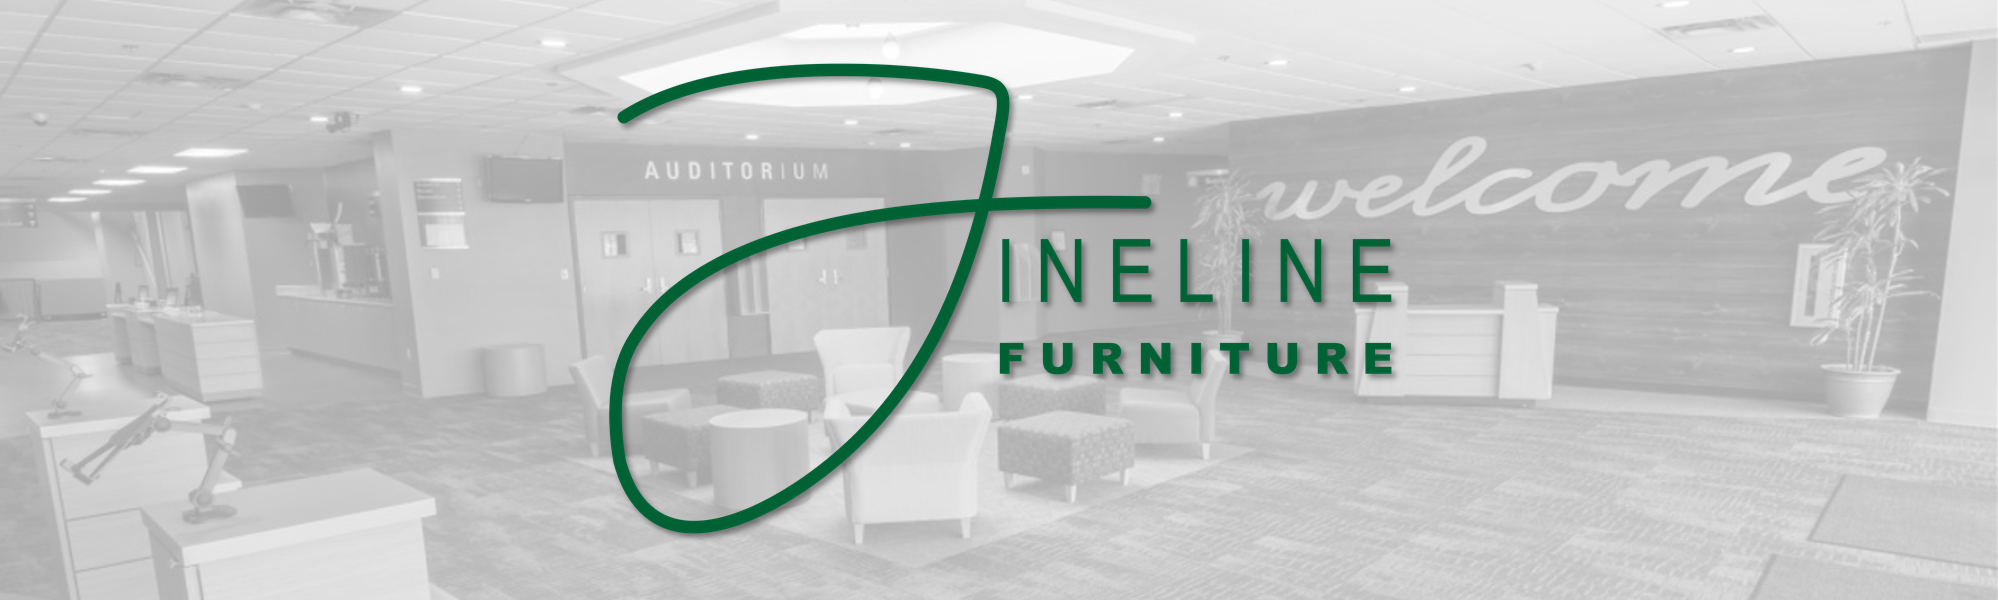 fineline furniture company page slider